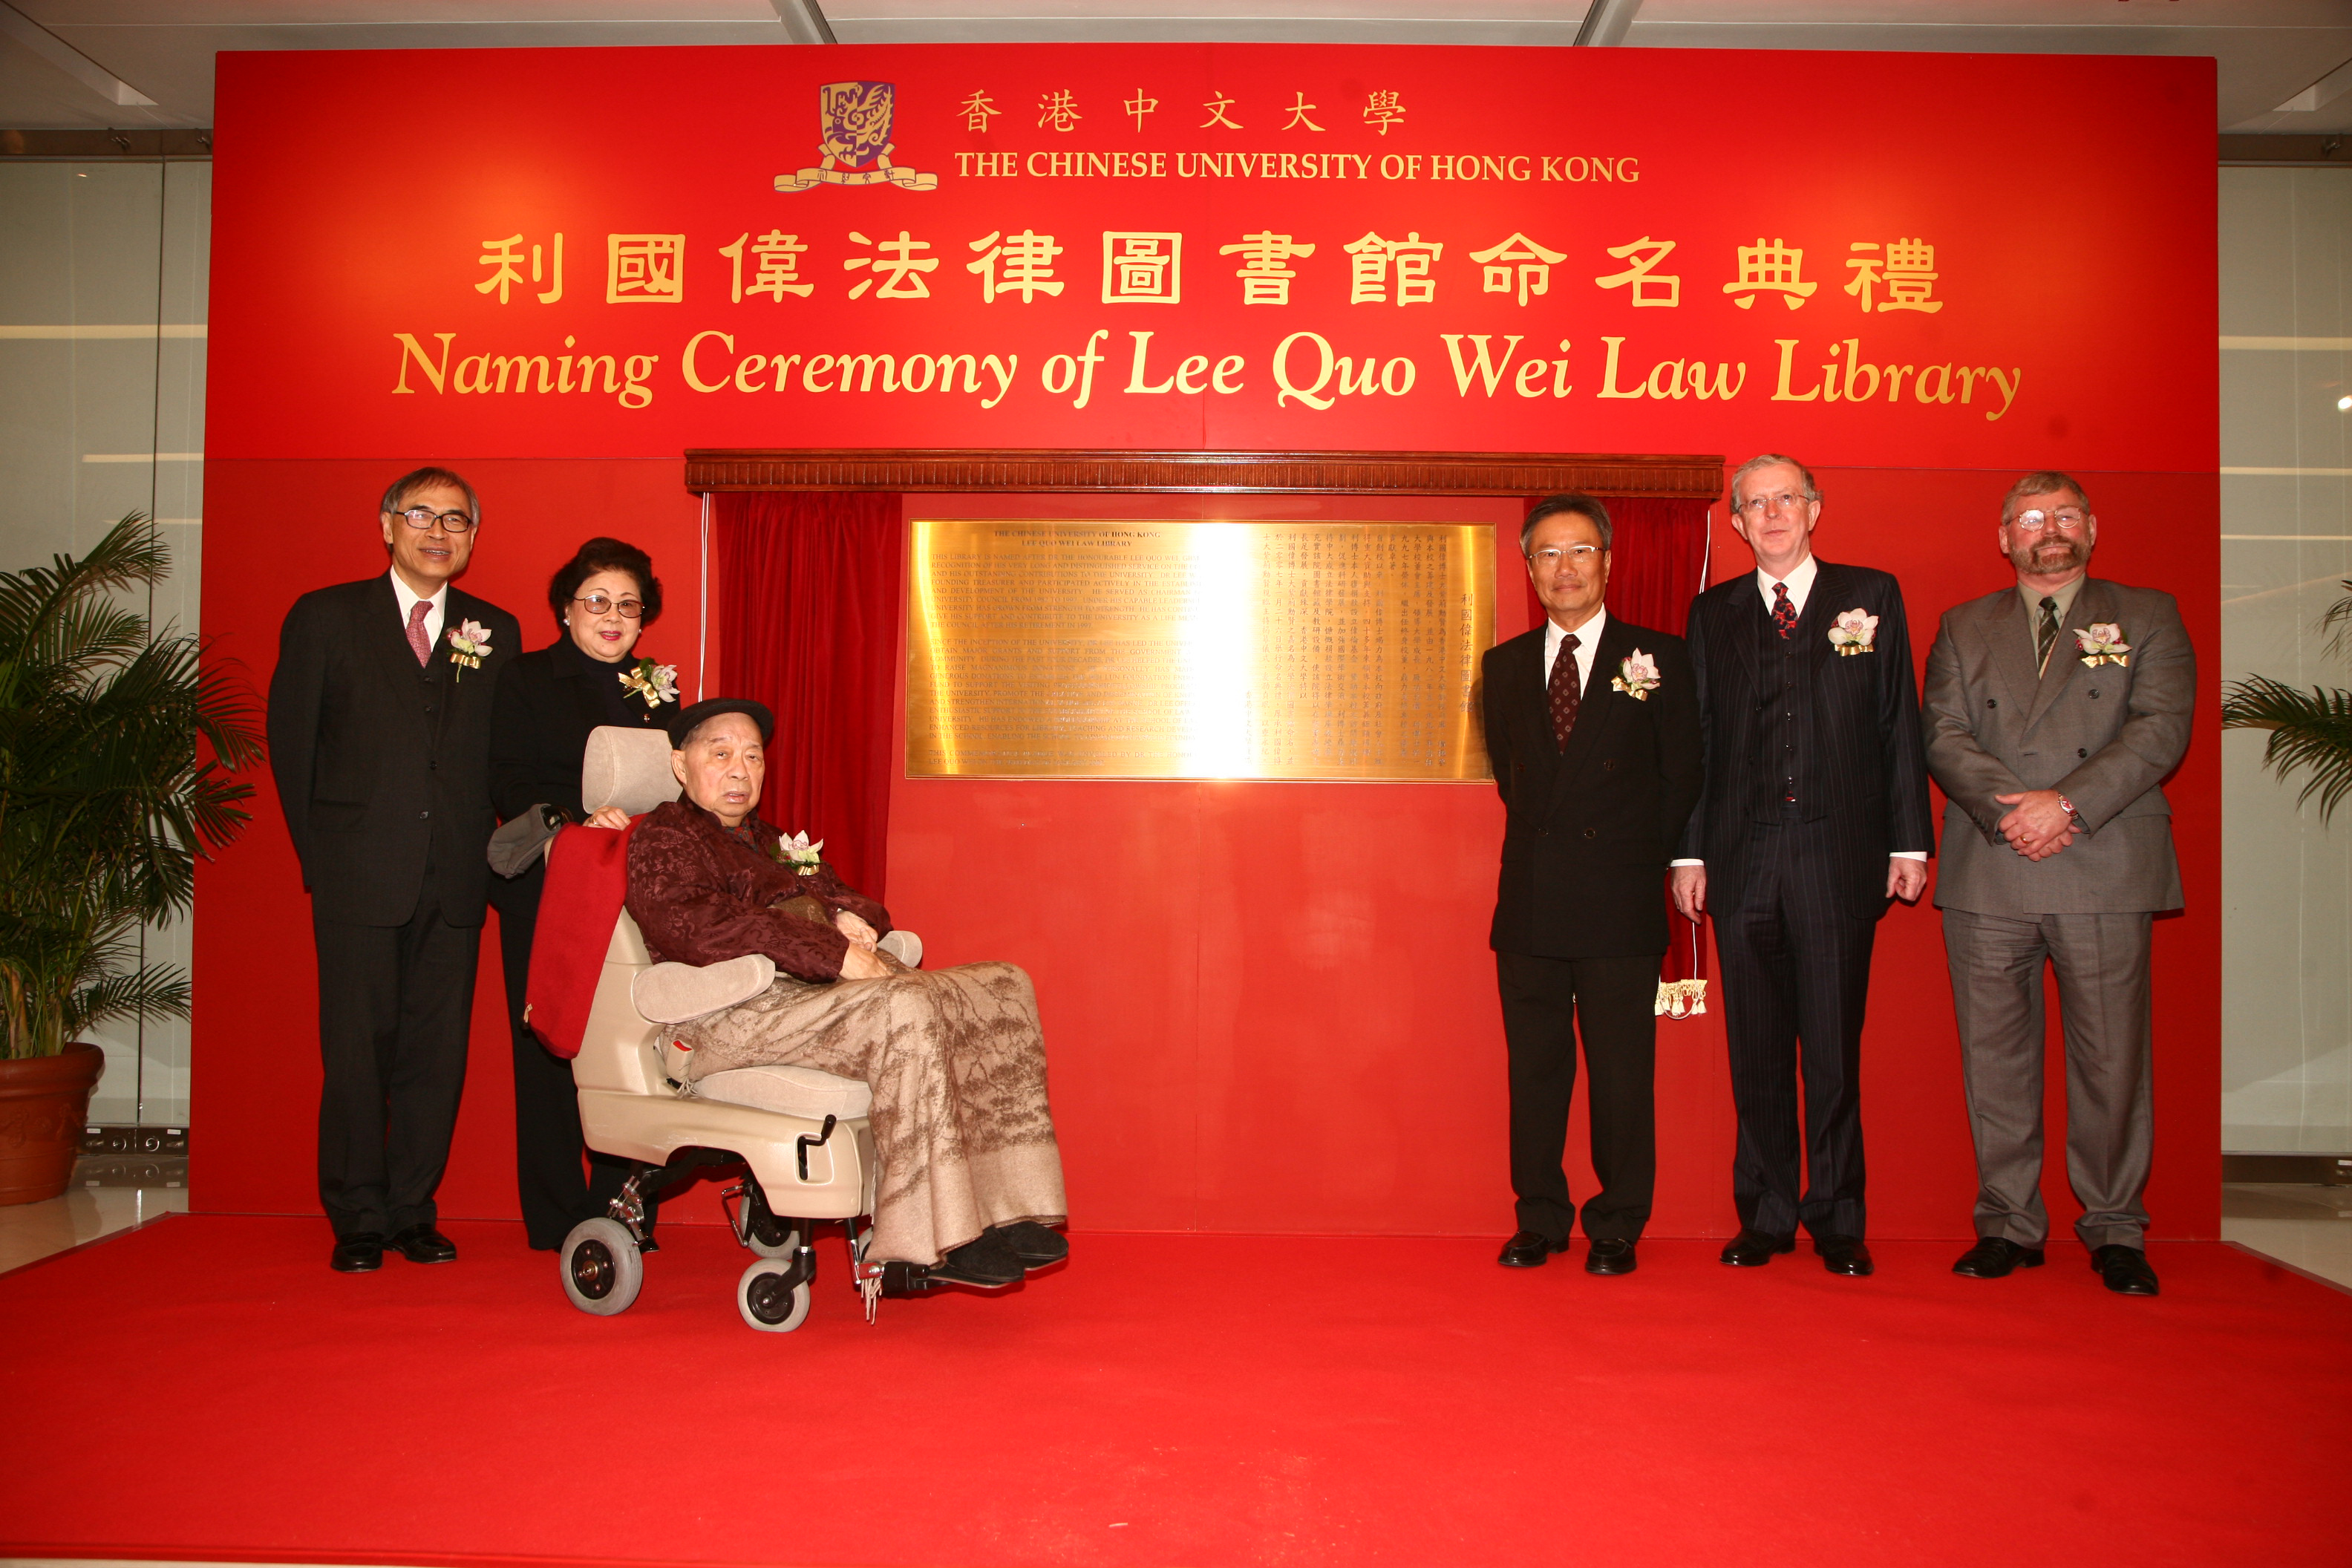 Dr & Mrs Lee Quo Wei (2nd & 3rd from the left), accompanied by Prof Lawrence Lau (1st from the left), Dr Edgar Cheng (3rd from the right), Prof Mike McConville (2nd from the right and Dr Colin Storey (1st from the right), performed the plaque unveiling for Lee Quo Wei Law Library.